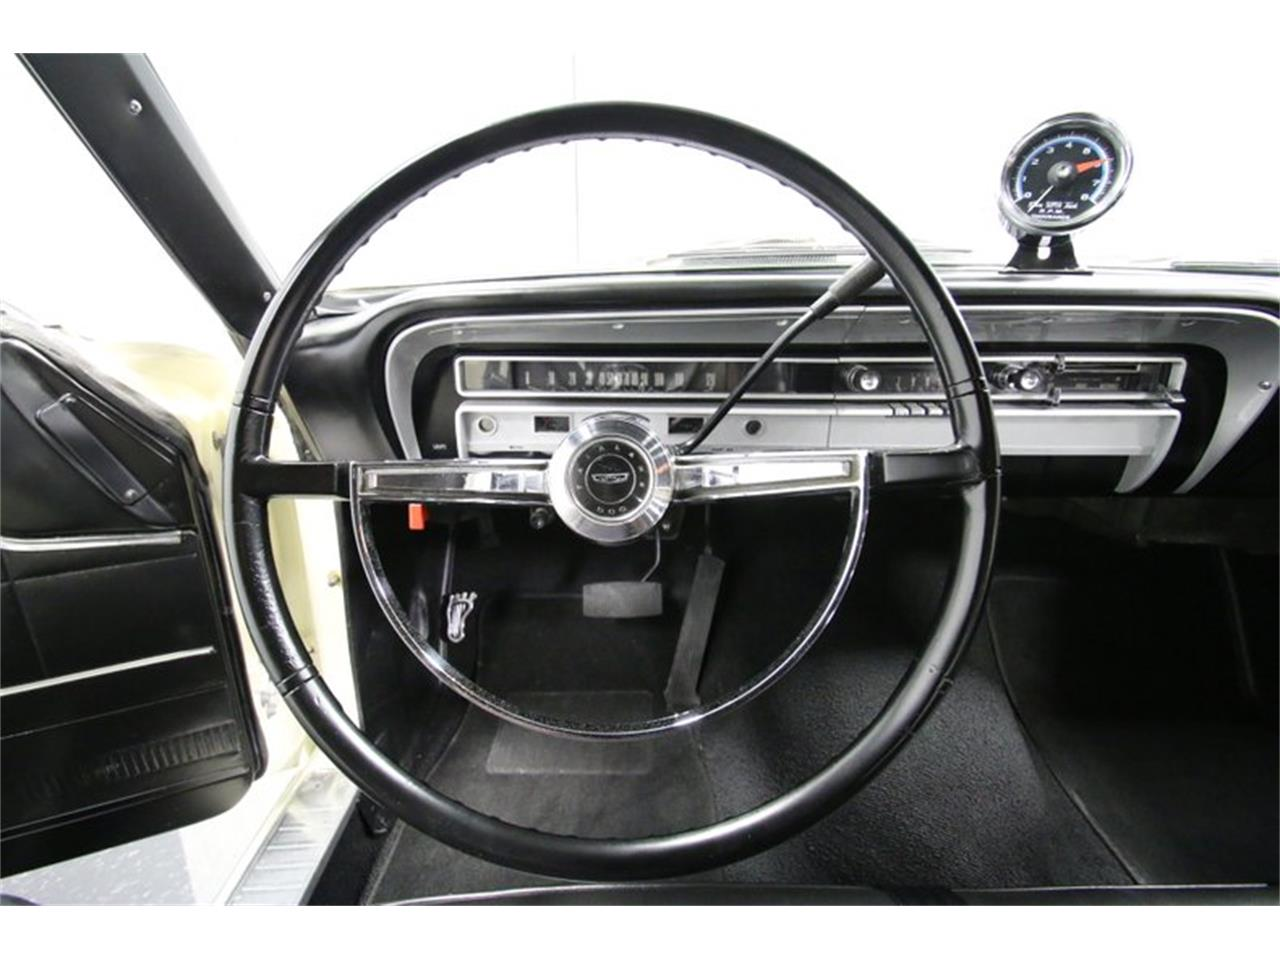 Large Picture of '65 Ford Fairlane - $25,995.00 Offered by Streetside Classics - Atlanta - P9XP